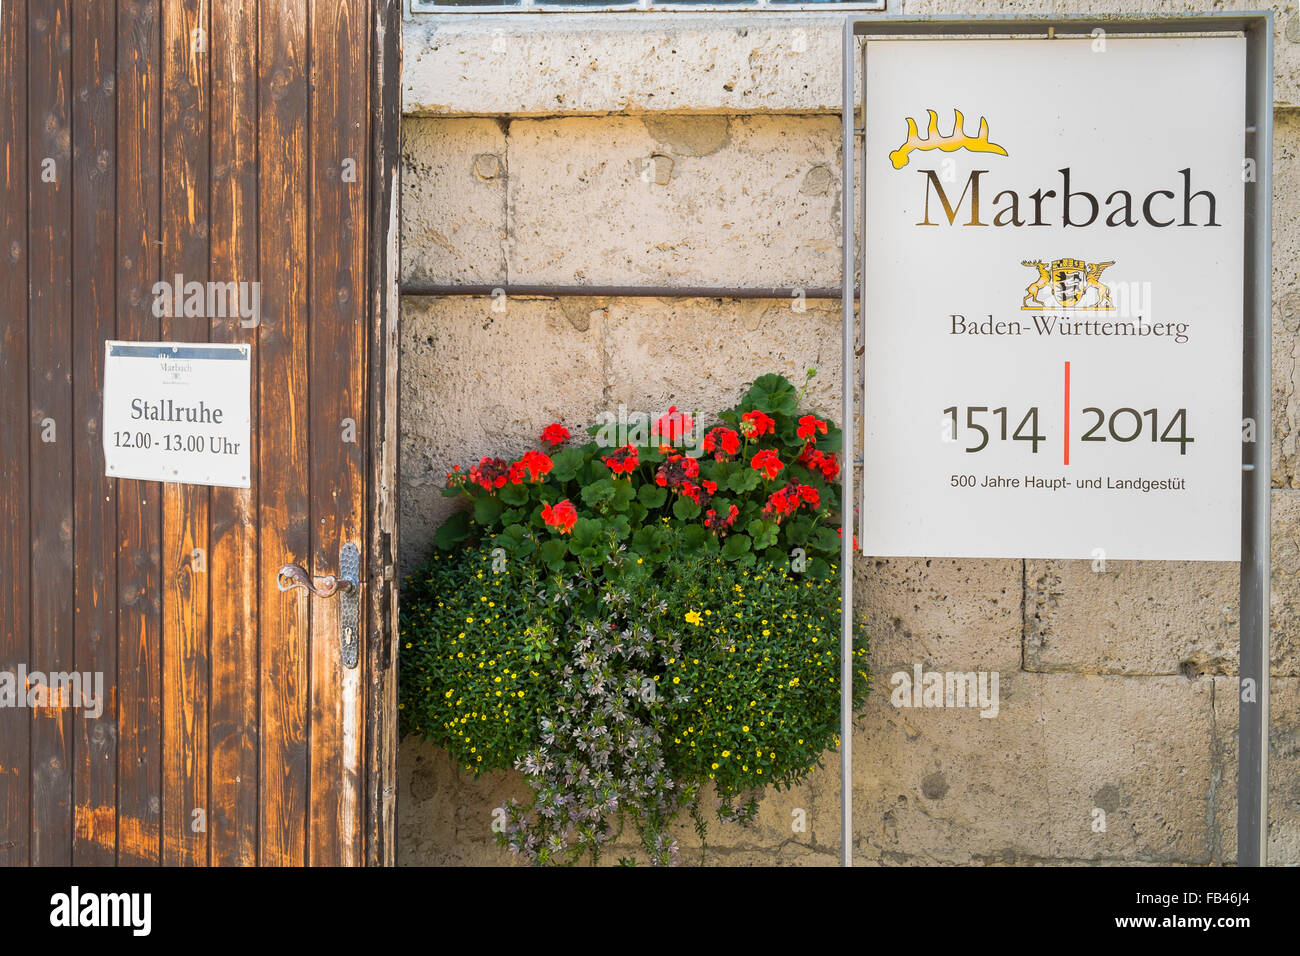 sign commemorating the 500th anniversary of marbach stud, marbach, baden-württemberg, germany - Stock Image